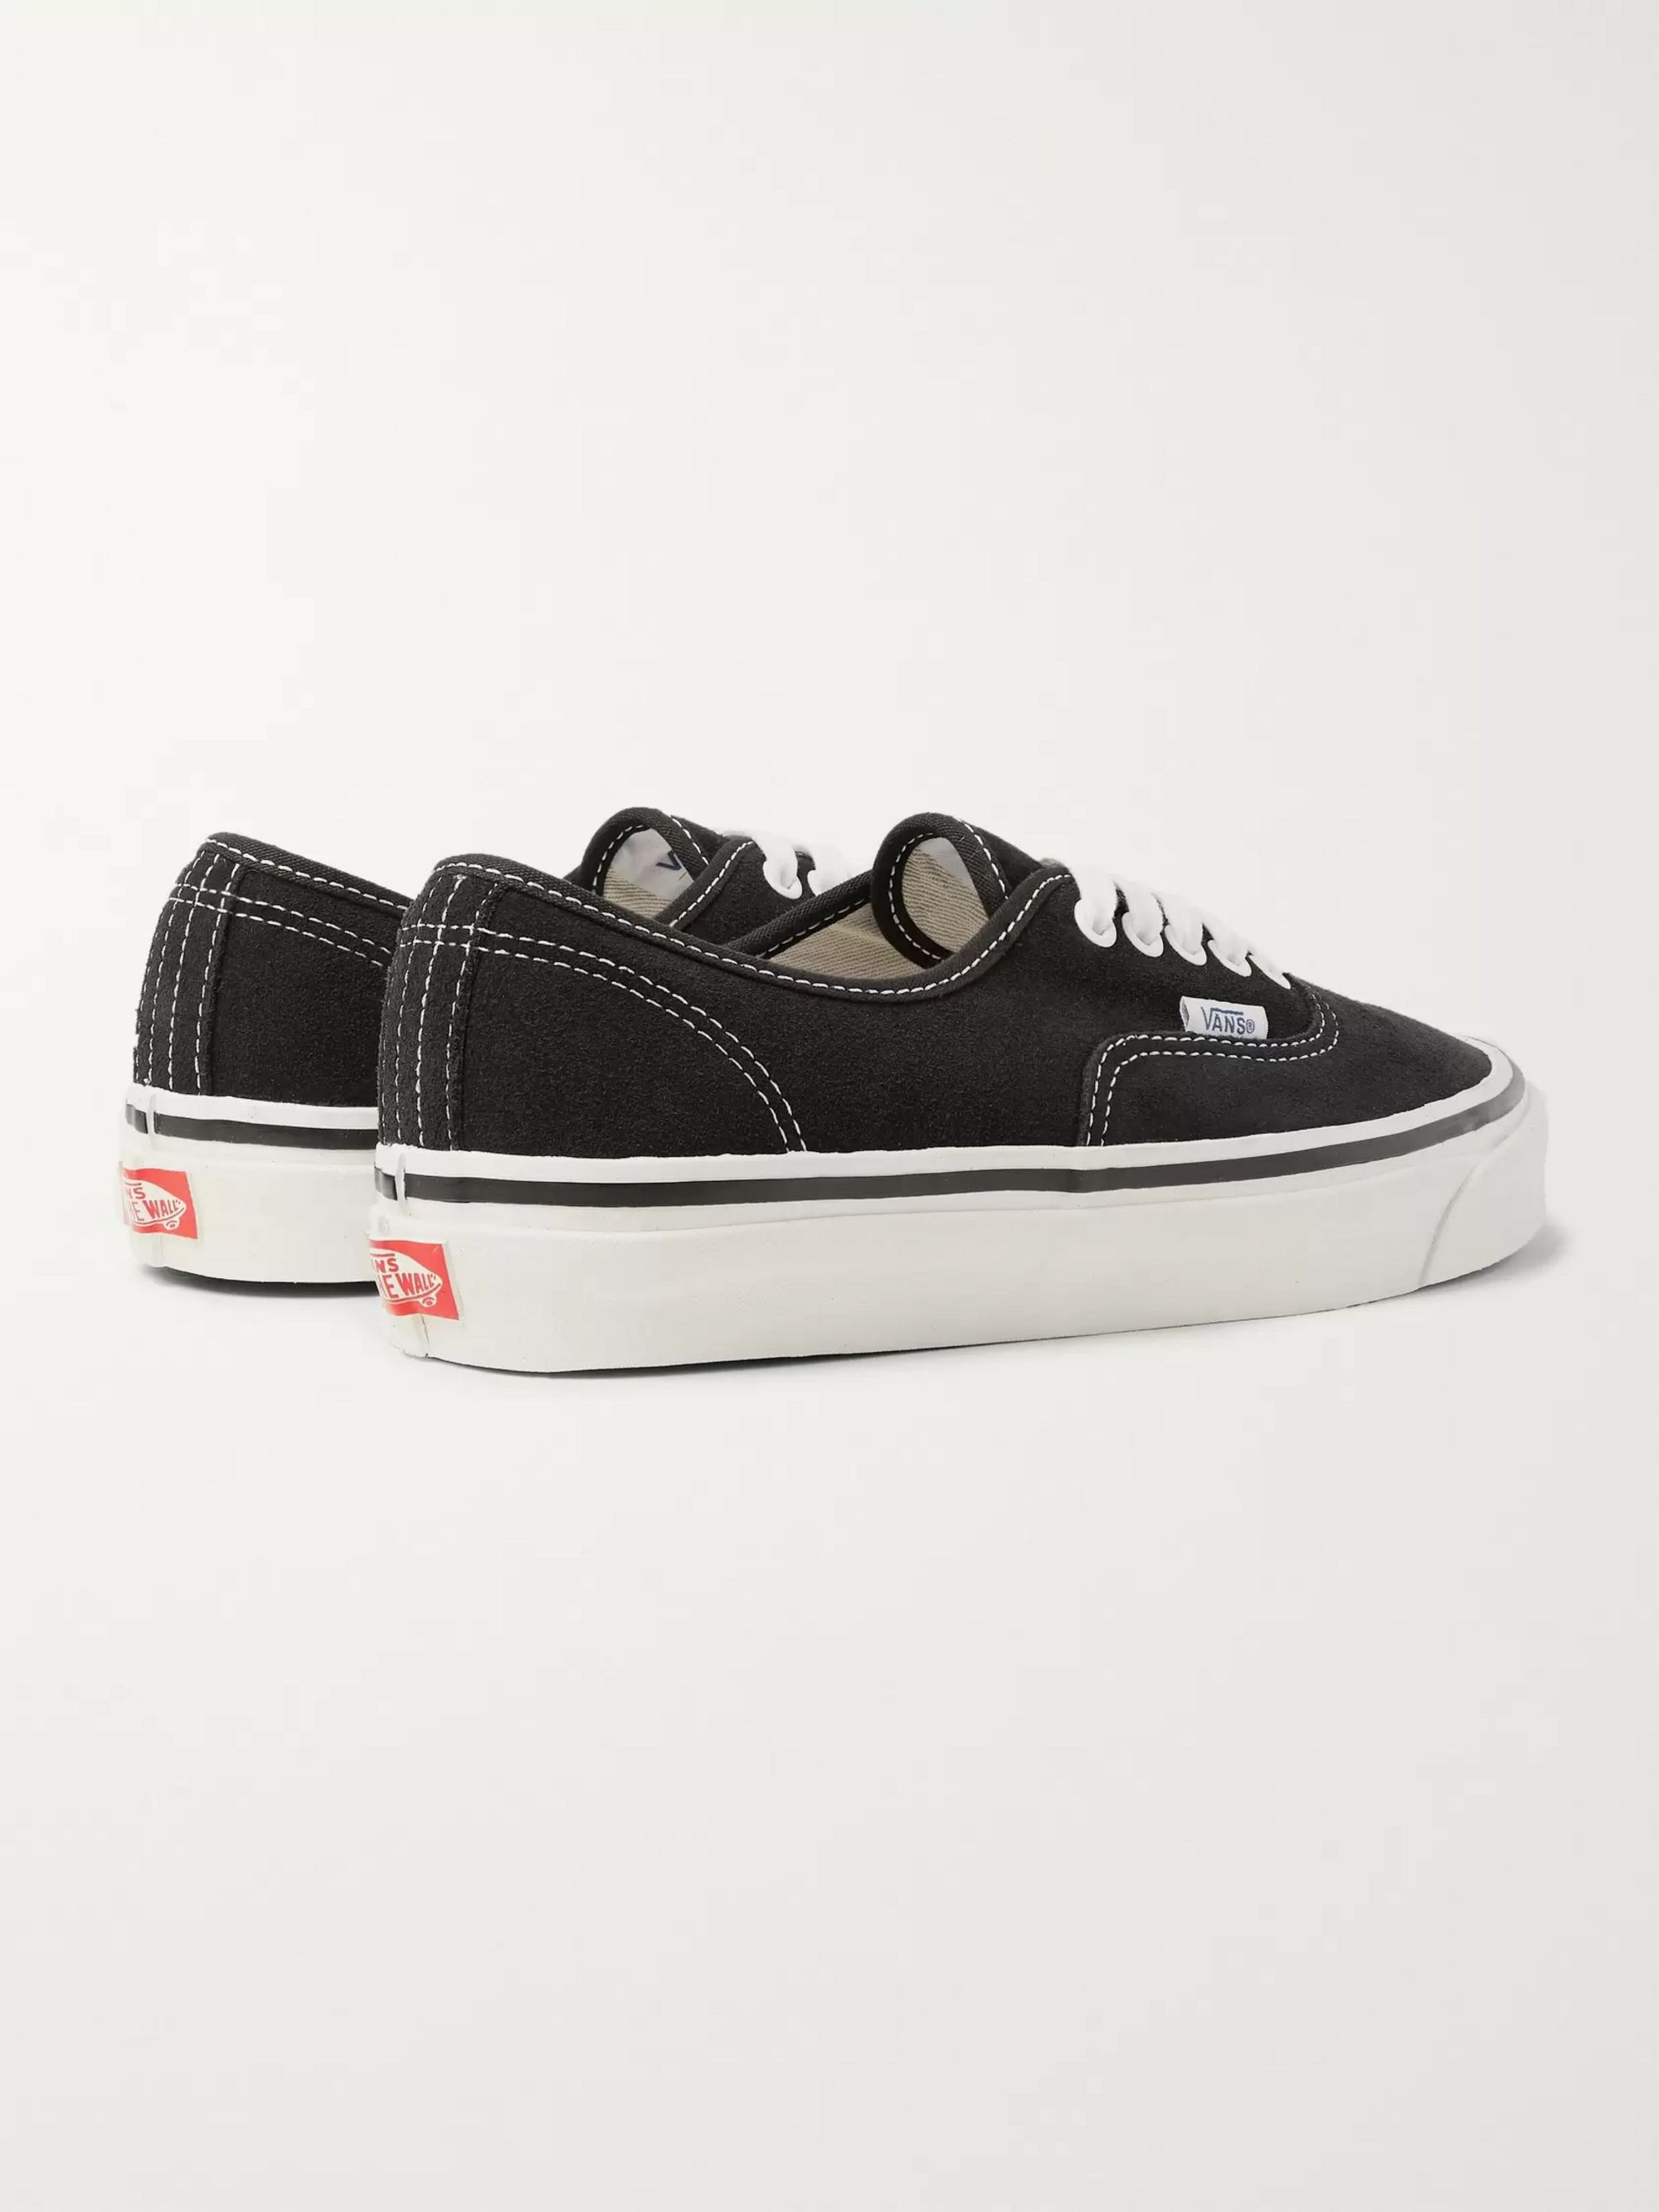 Vans Anaheim Authentic 44 DX Sneakers Canvas Sneakers